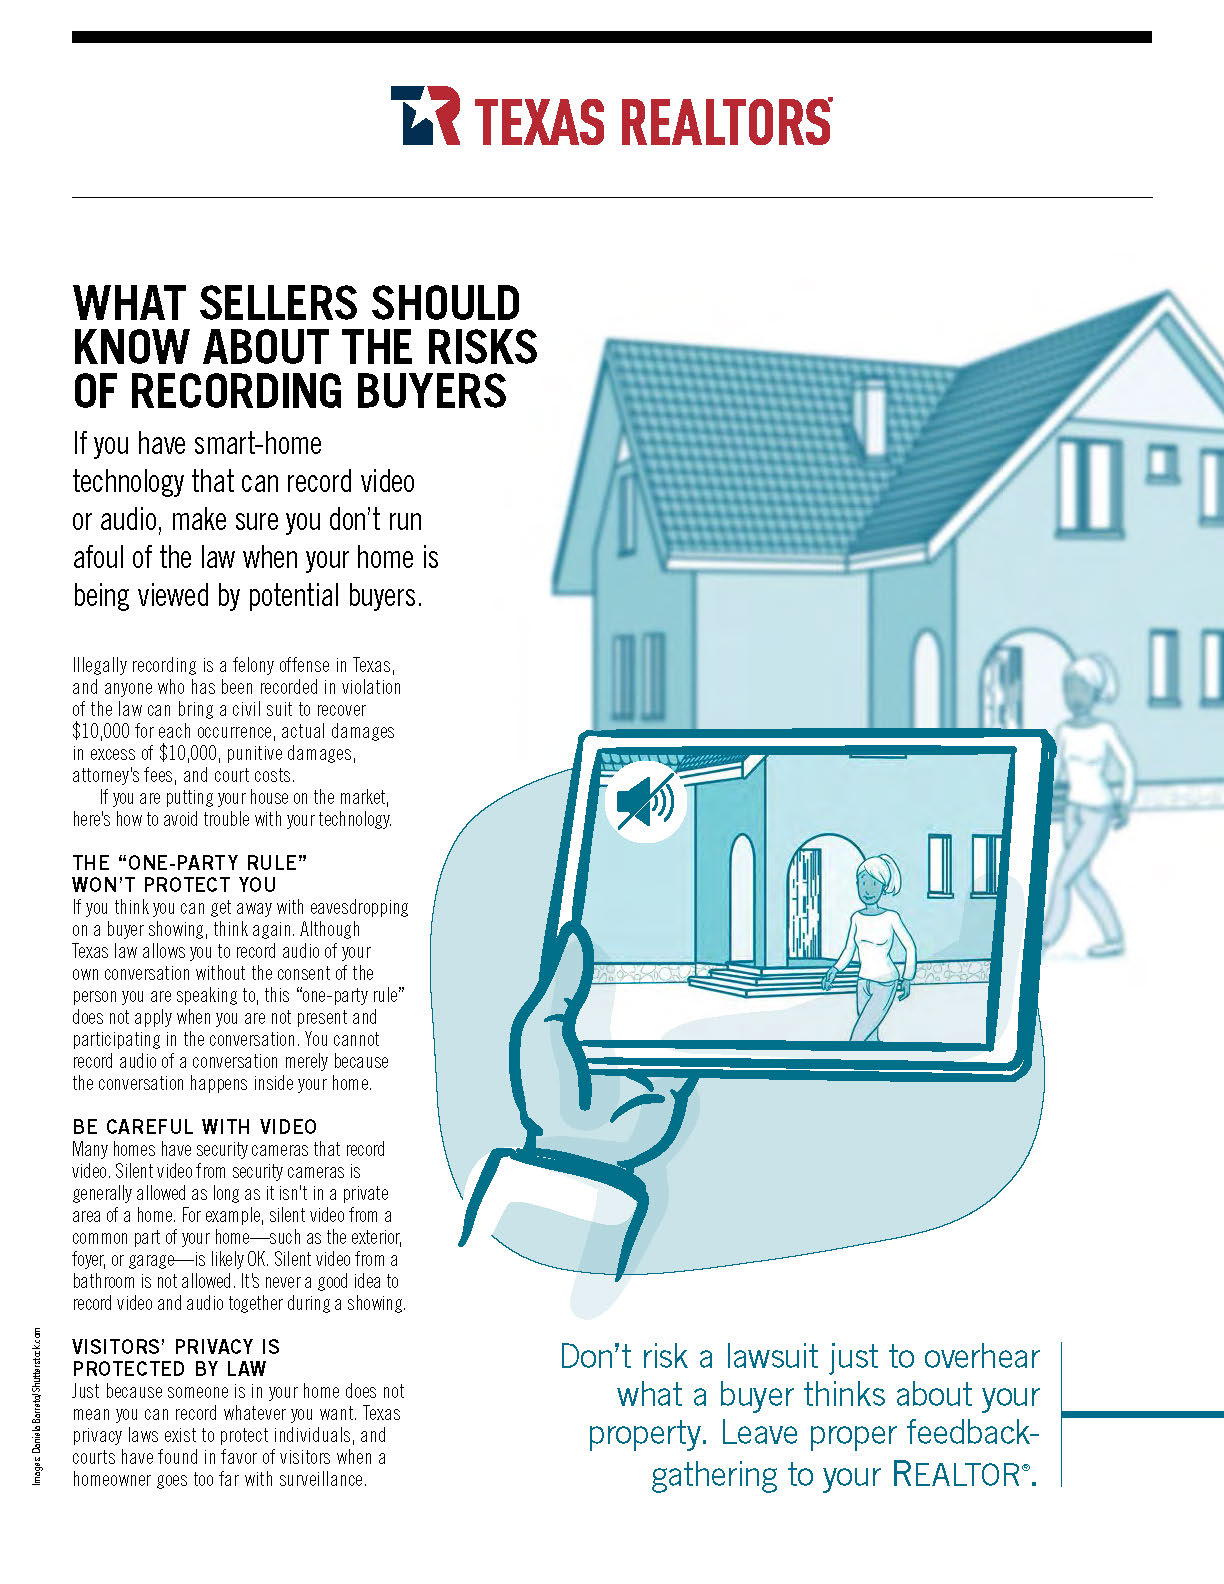 Risks of Recording Buyers